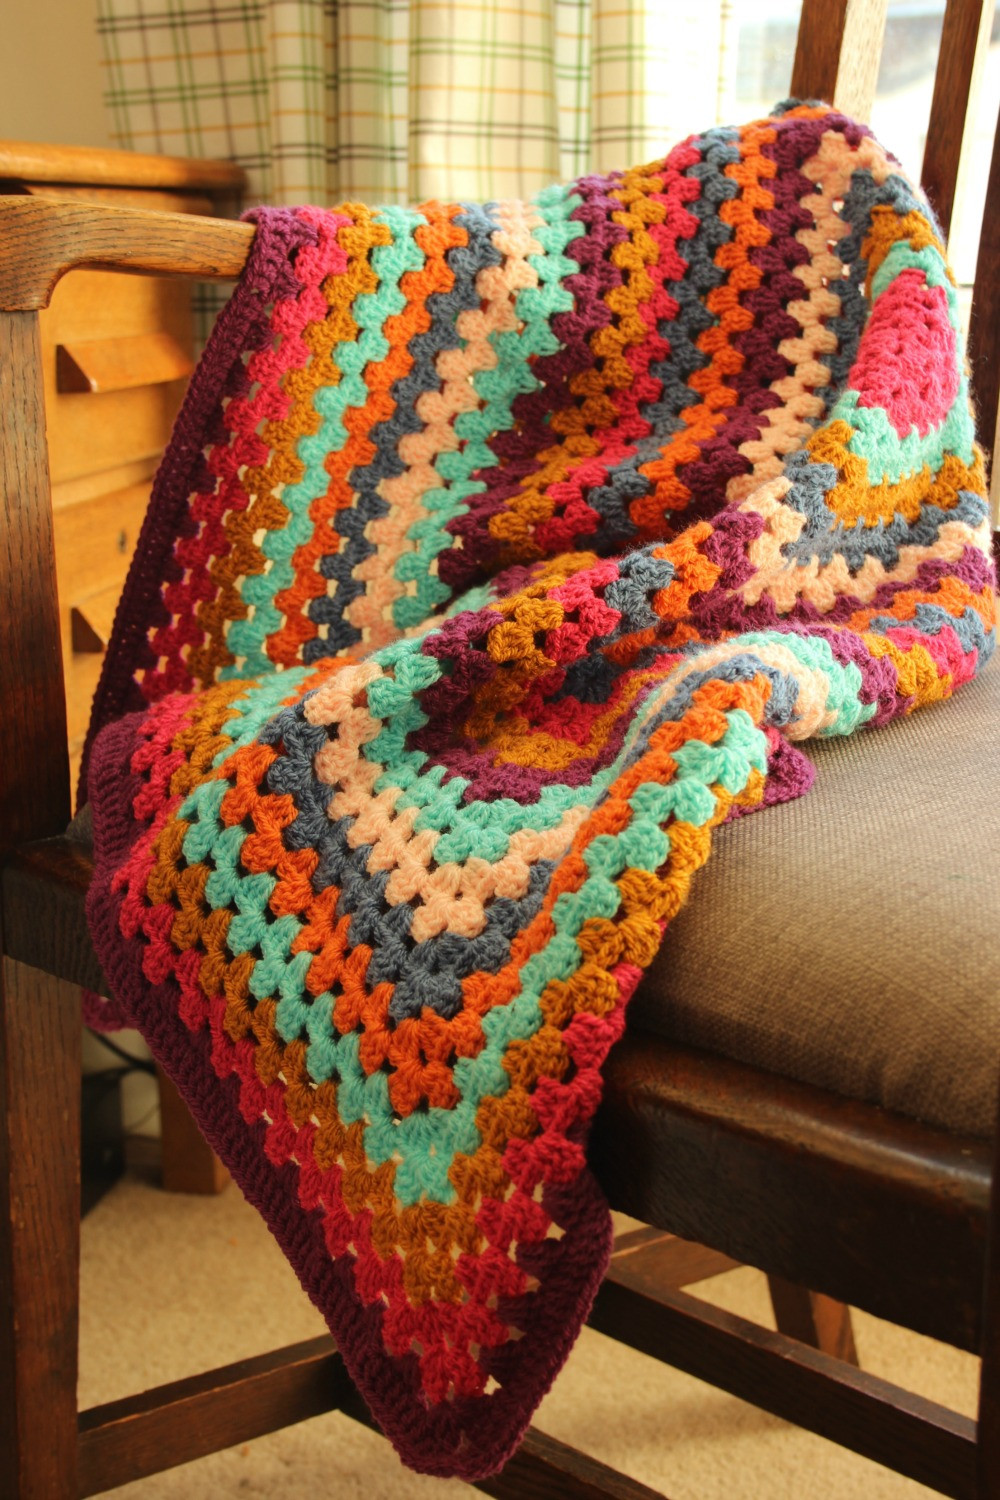 Crochet Granny Square Blanket Inspirational A Super Quick Granny Square Blanket – Zeens and Roger Of Lovely 48 Models Crochet Granny Square Blanket